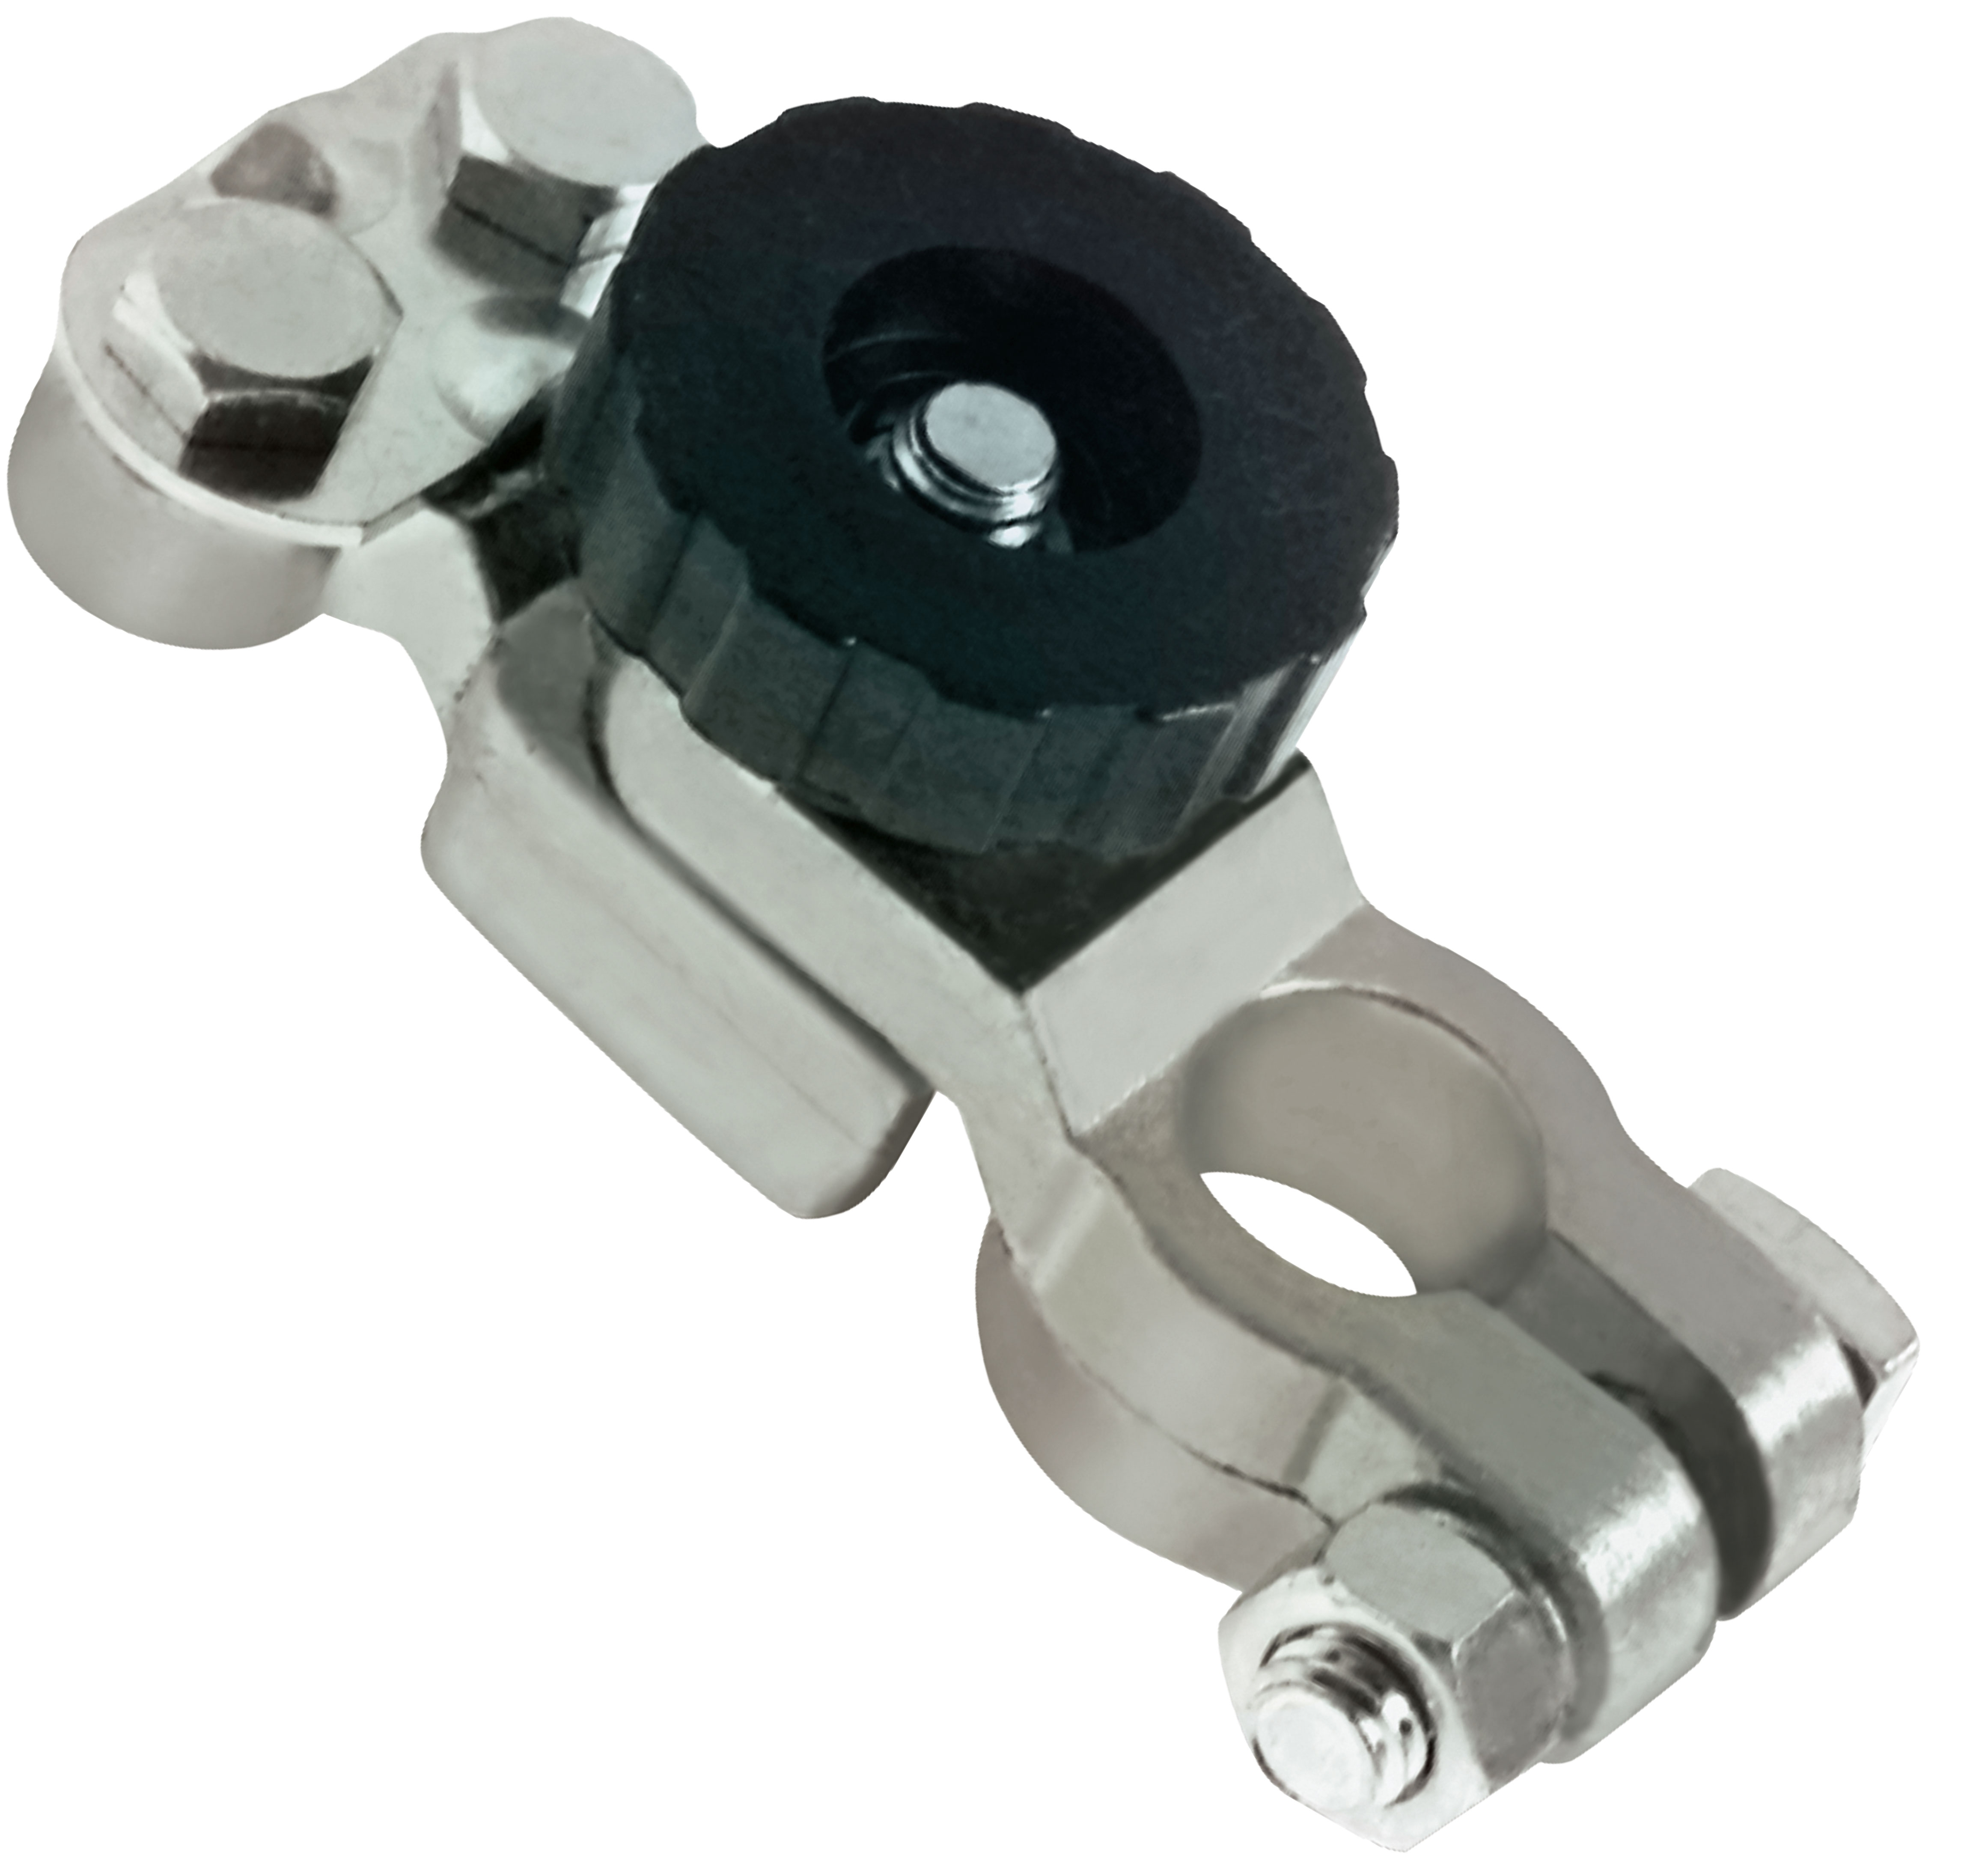 Top Post Battery Terminal Quick Disconnect 692578 Elecdirect Cole Hersee Heavy Duty Spdt Momentary Toggle Switch 5502155021bx